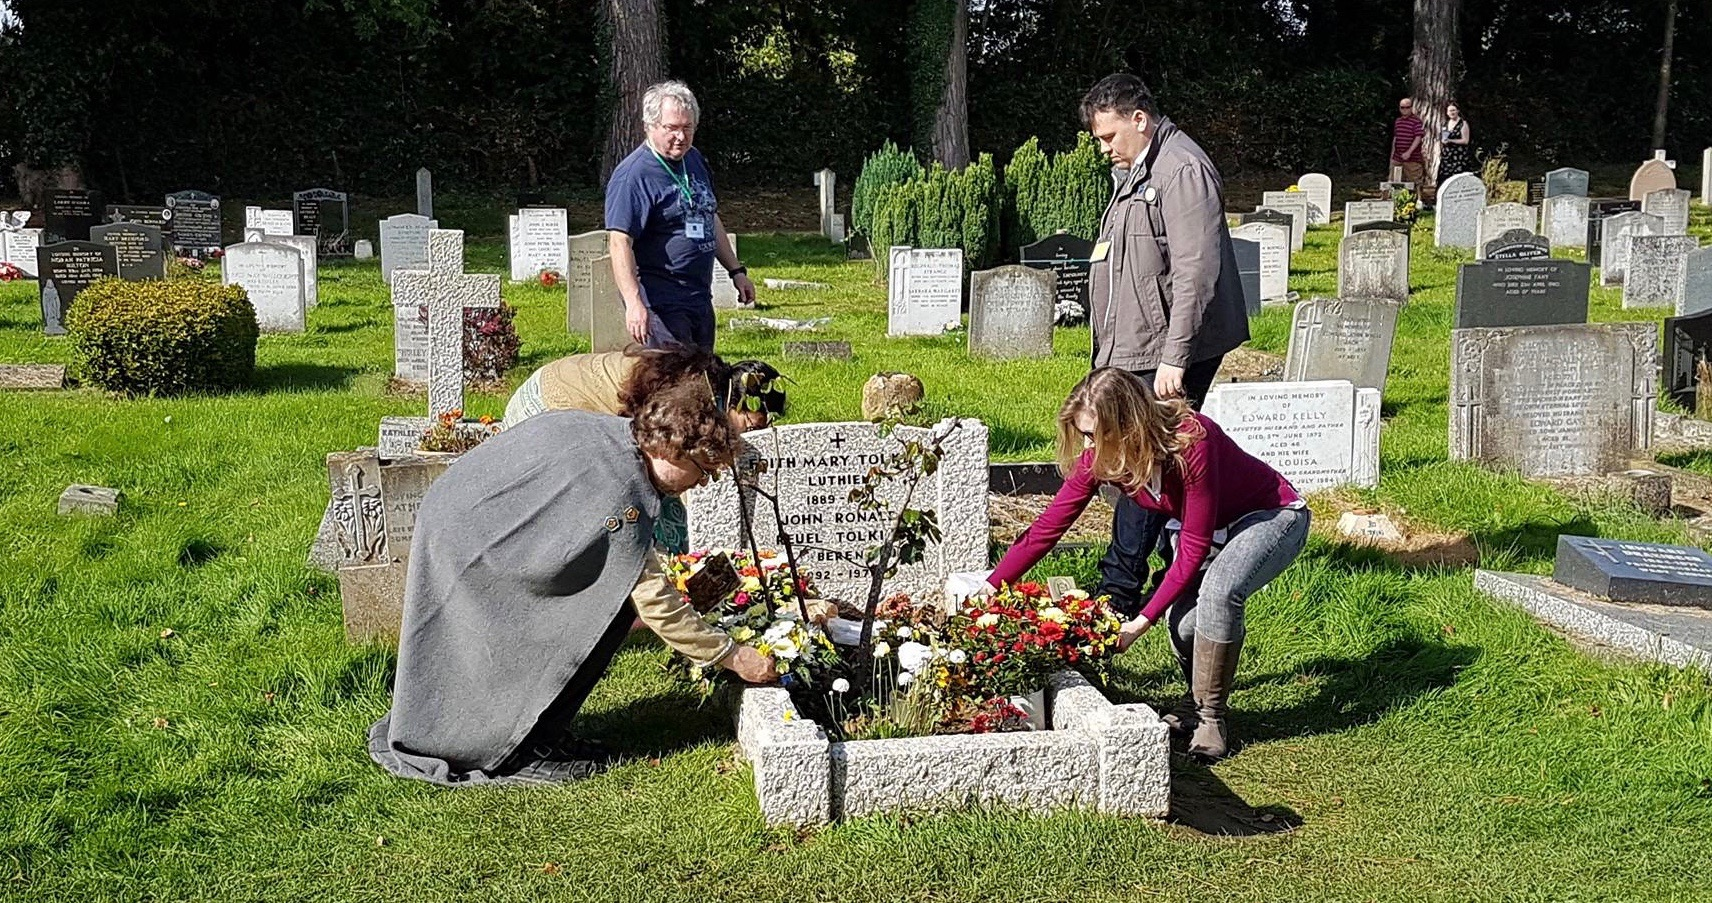 Representatives of visiting Tolkien Societies laying wreaths on Tolkien's grave at Wolvercote Cemetery, Oxford